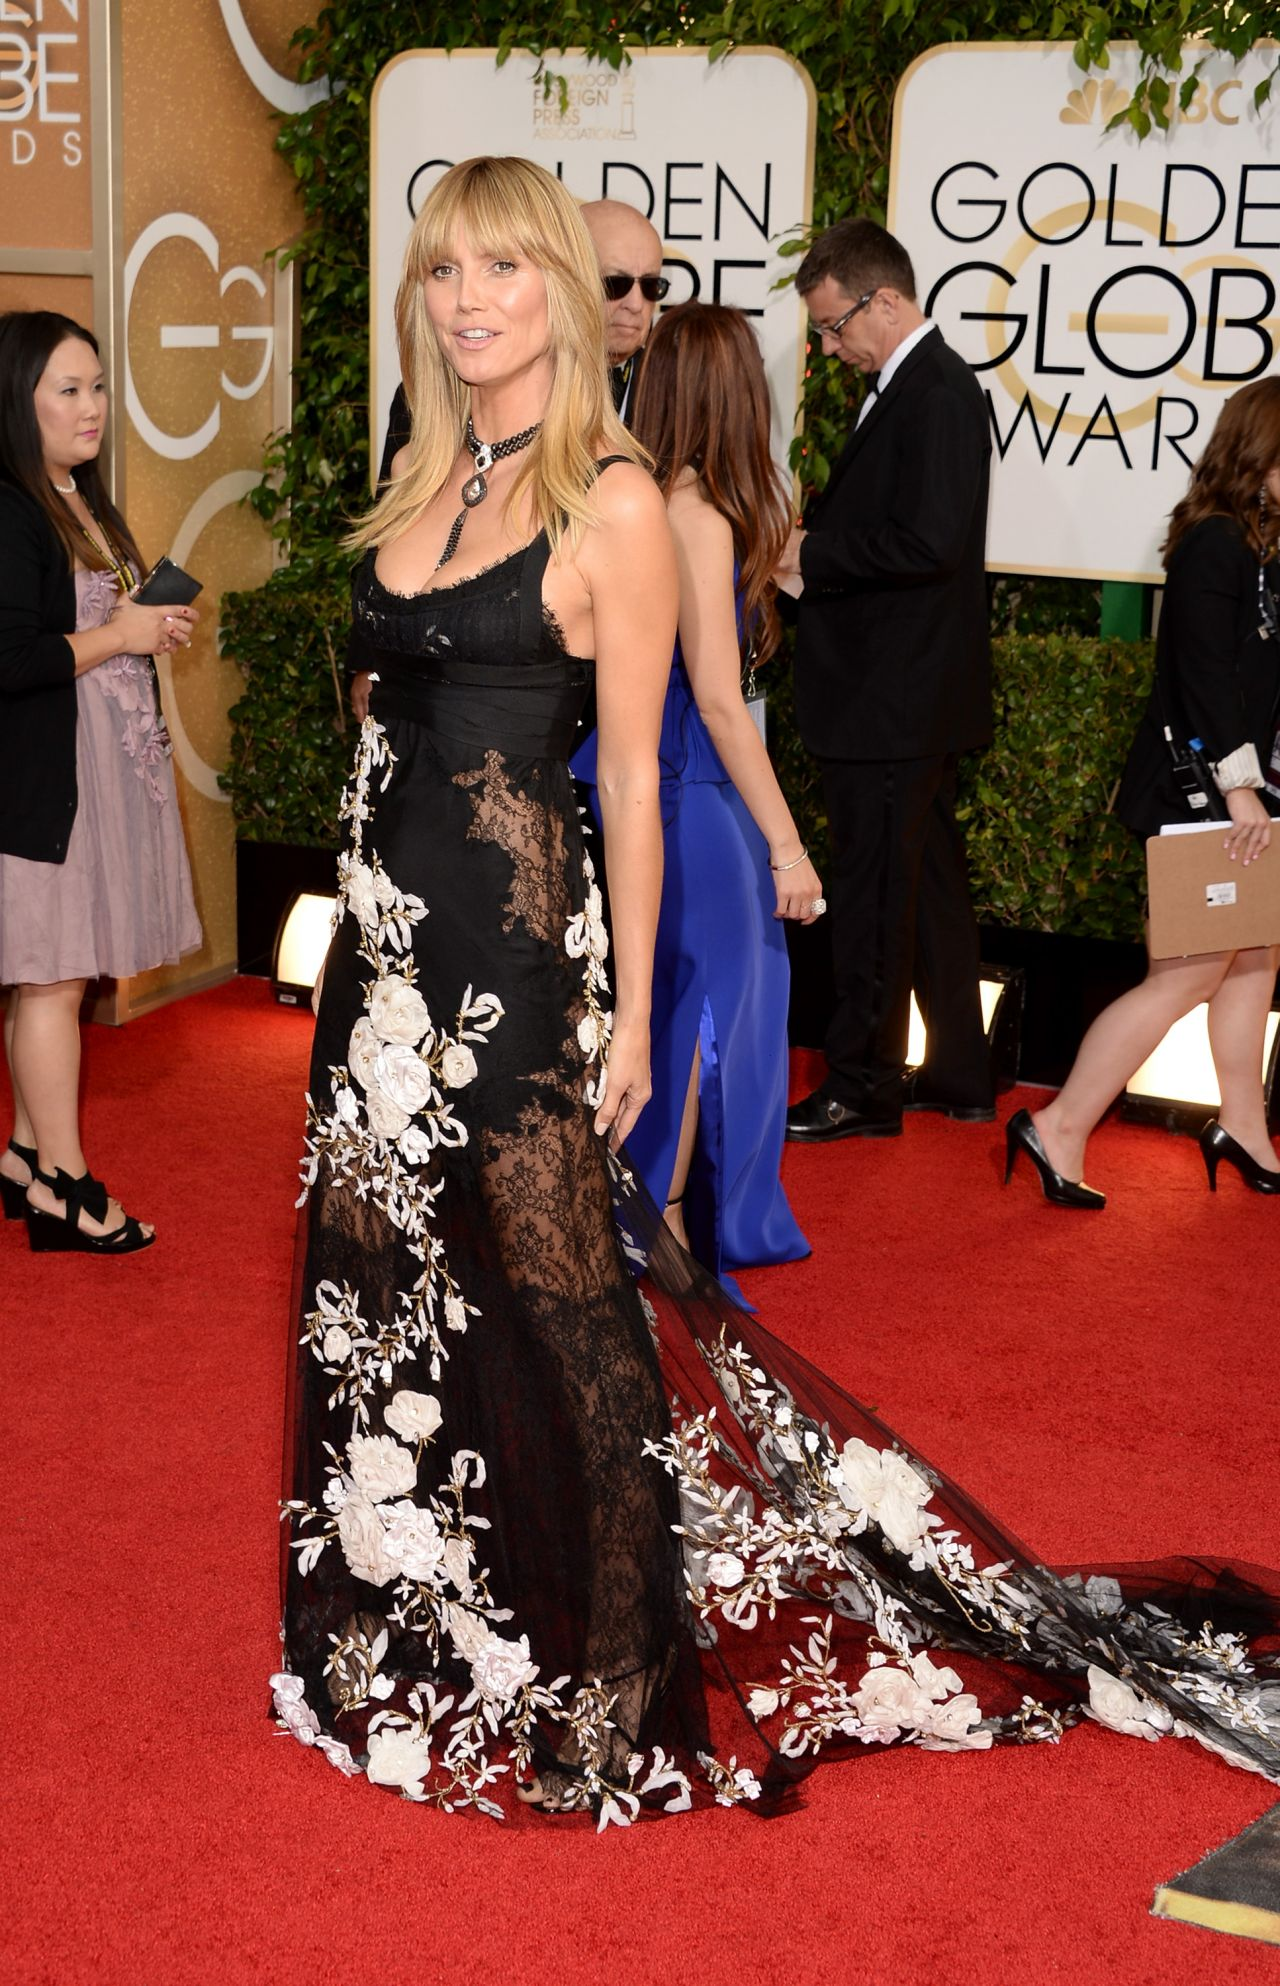 Heidi Klum - 2014 Golden Globe Awards Red Carpet Photos